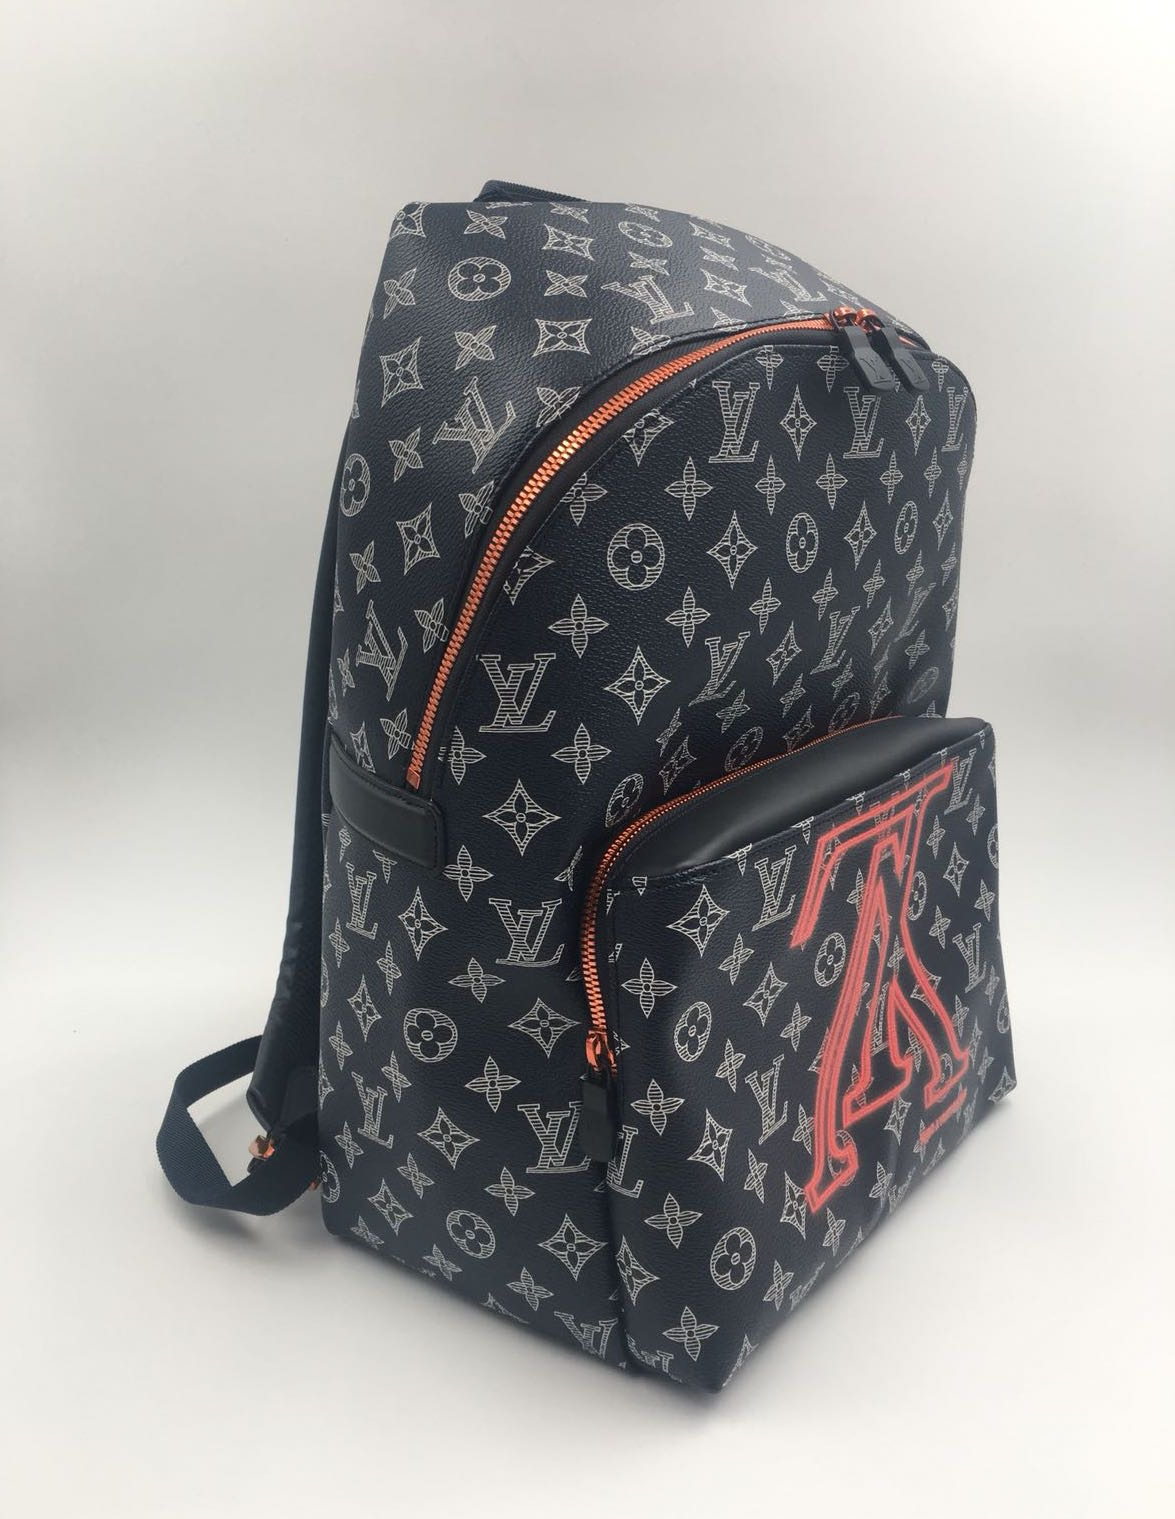 91bf5822f959 Louis Vuitton